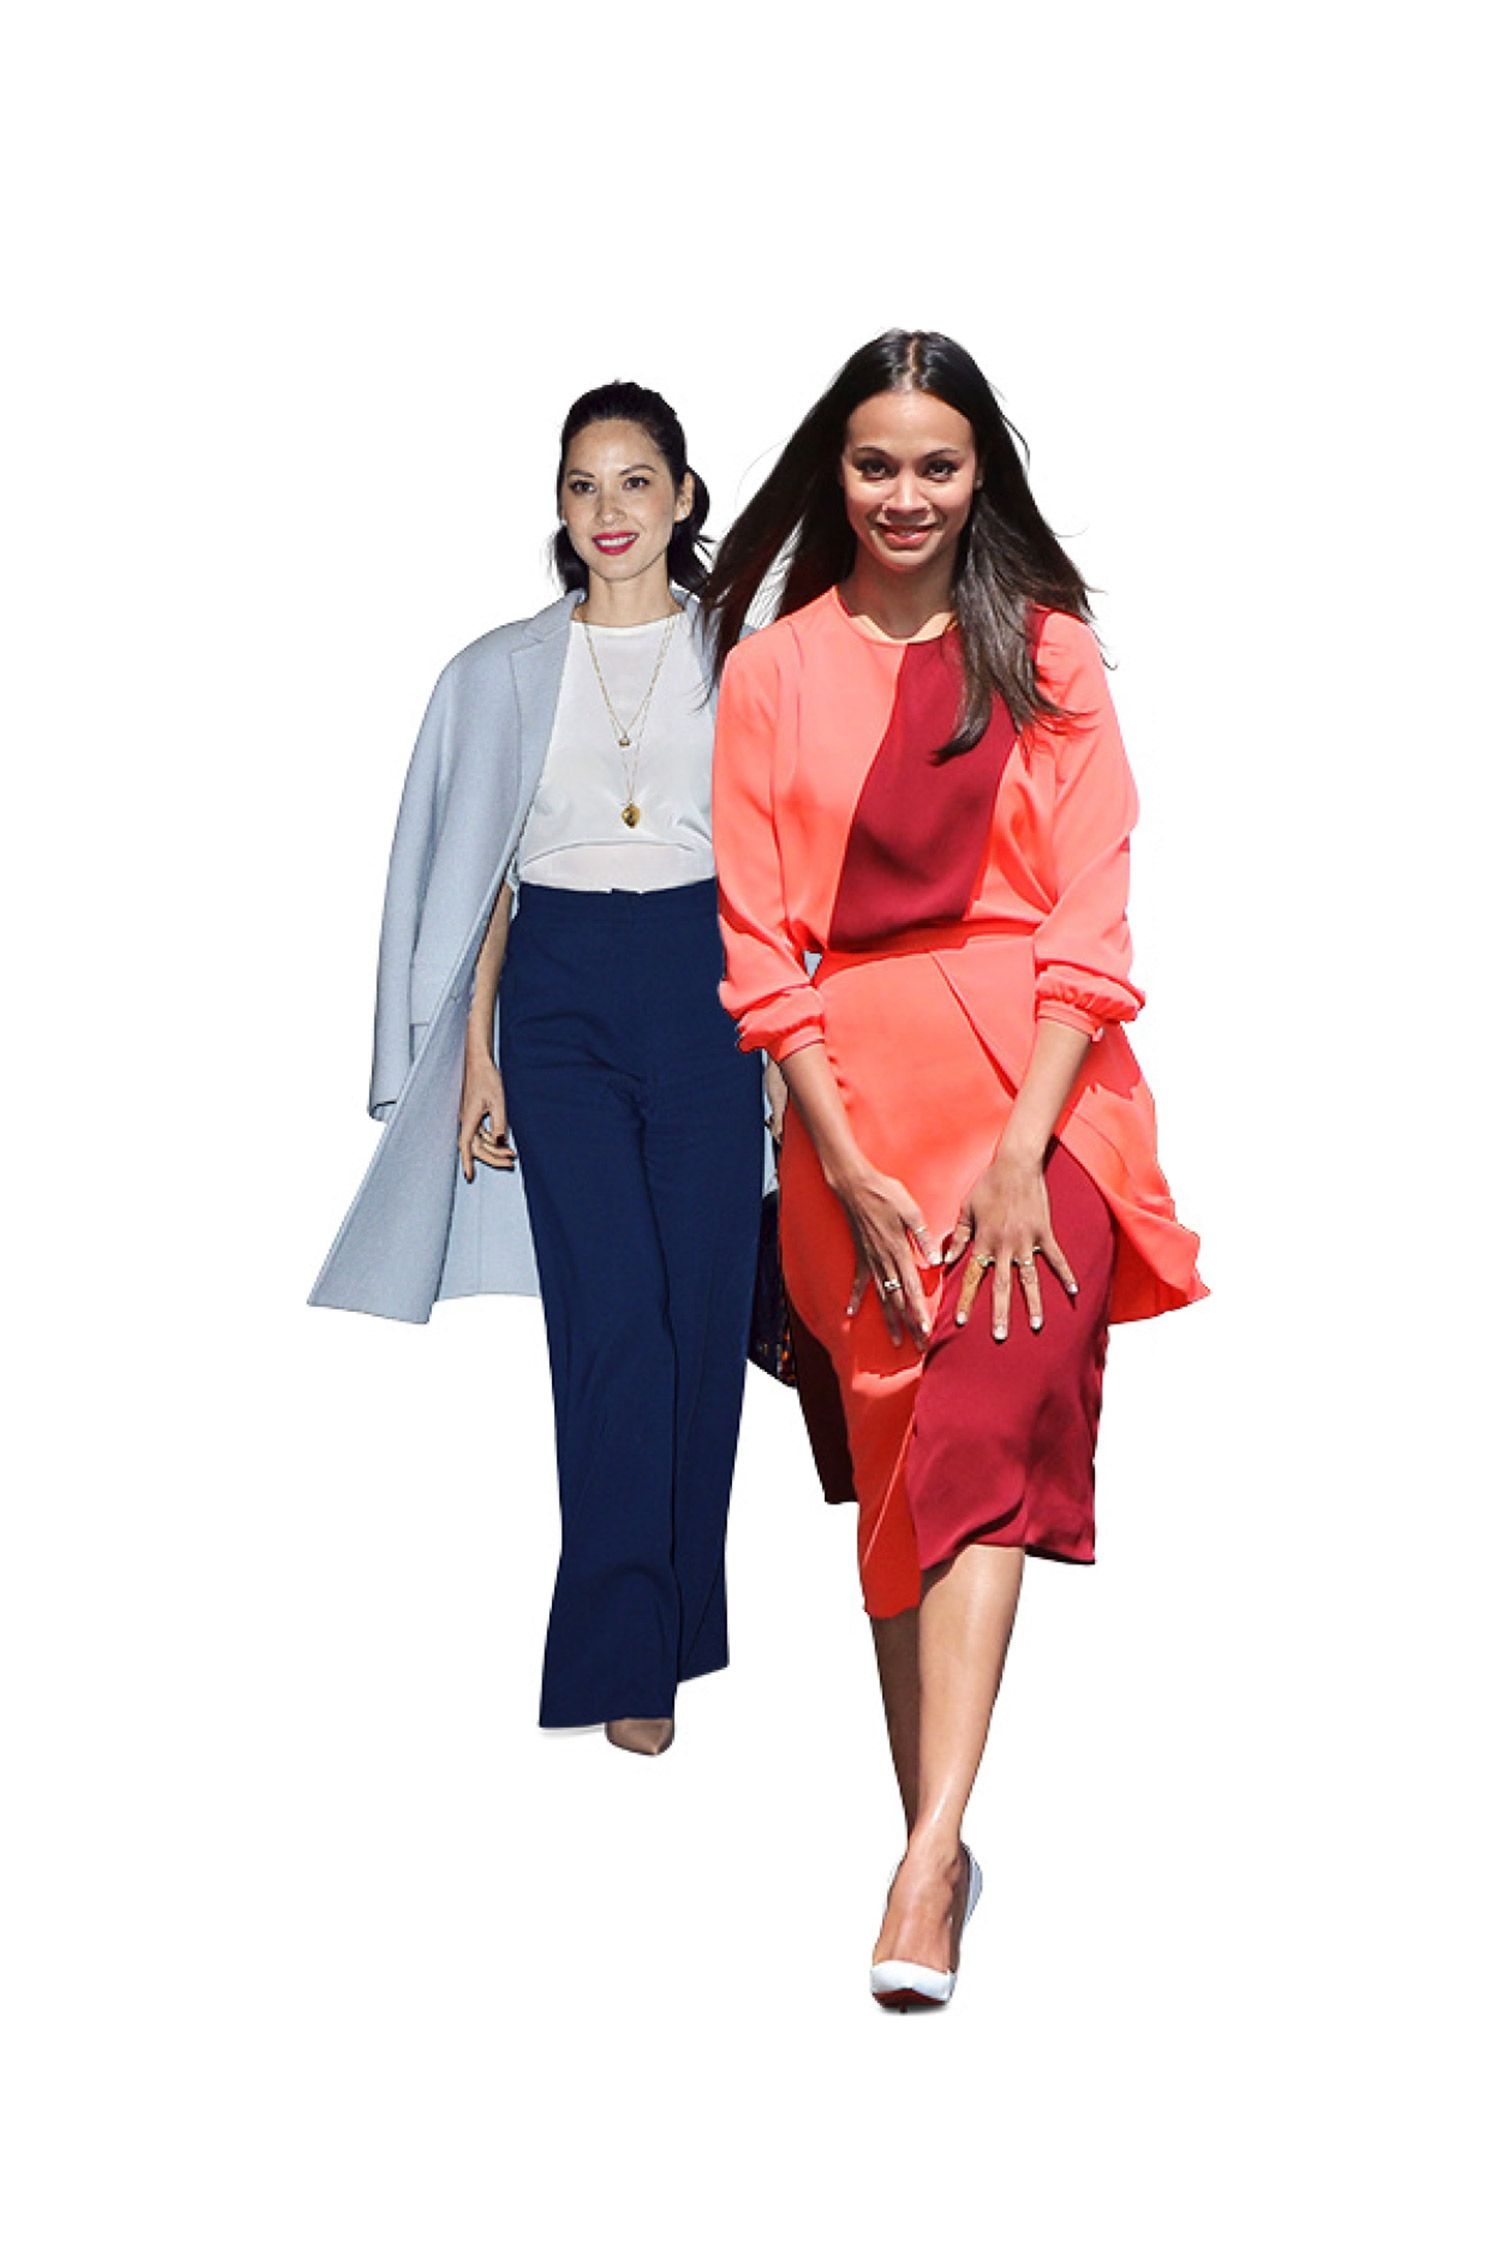 <p>Forget the glitz but not the glamour: This year, Olivia Munn and Zoe Saldana have stood out as two of Hollywood's most polished stars. Saldana keeps it modern in Tanya Taylor colorblocking, while Munn reaches for high-waisted, wide-leg trousers—a far cooler way to accentuate her killer curves than standard skinny jeans.</p>